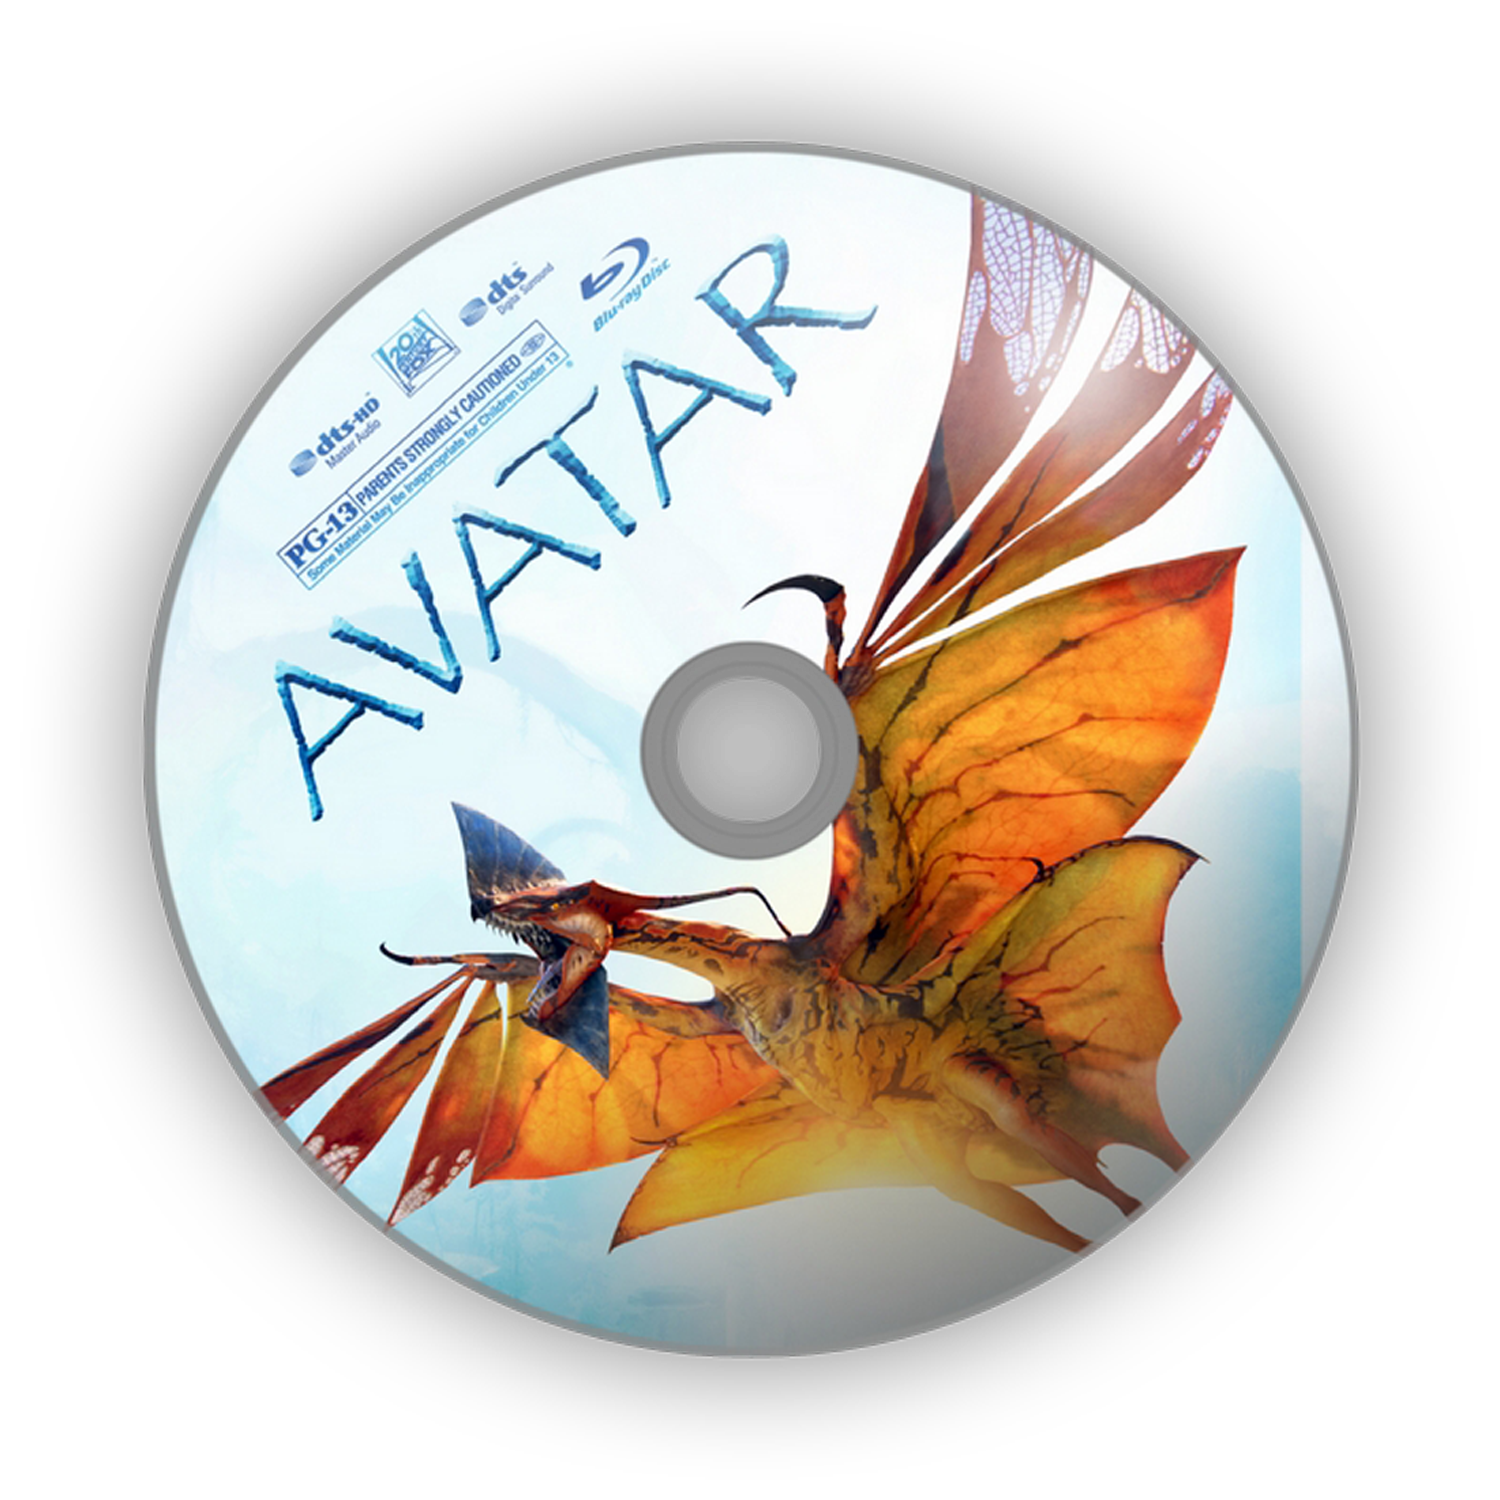 Avatar Movie Poster: Movie Poster And DVD Cover Art